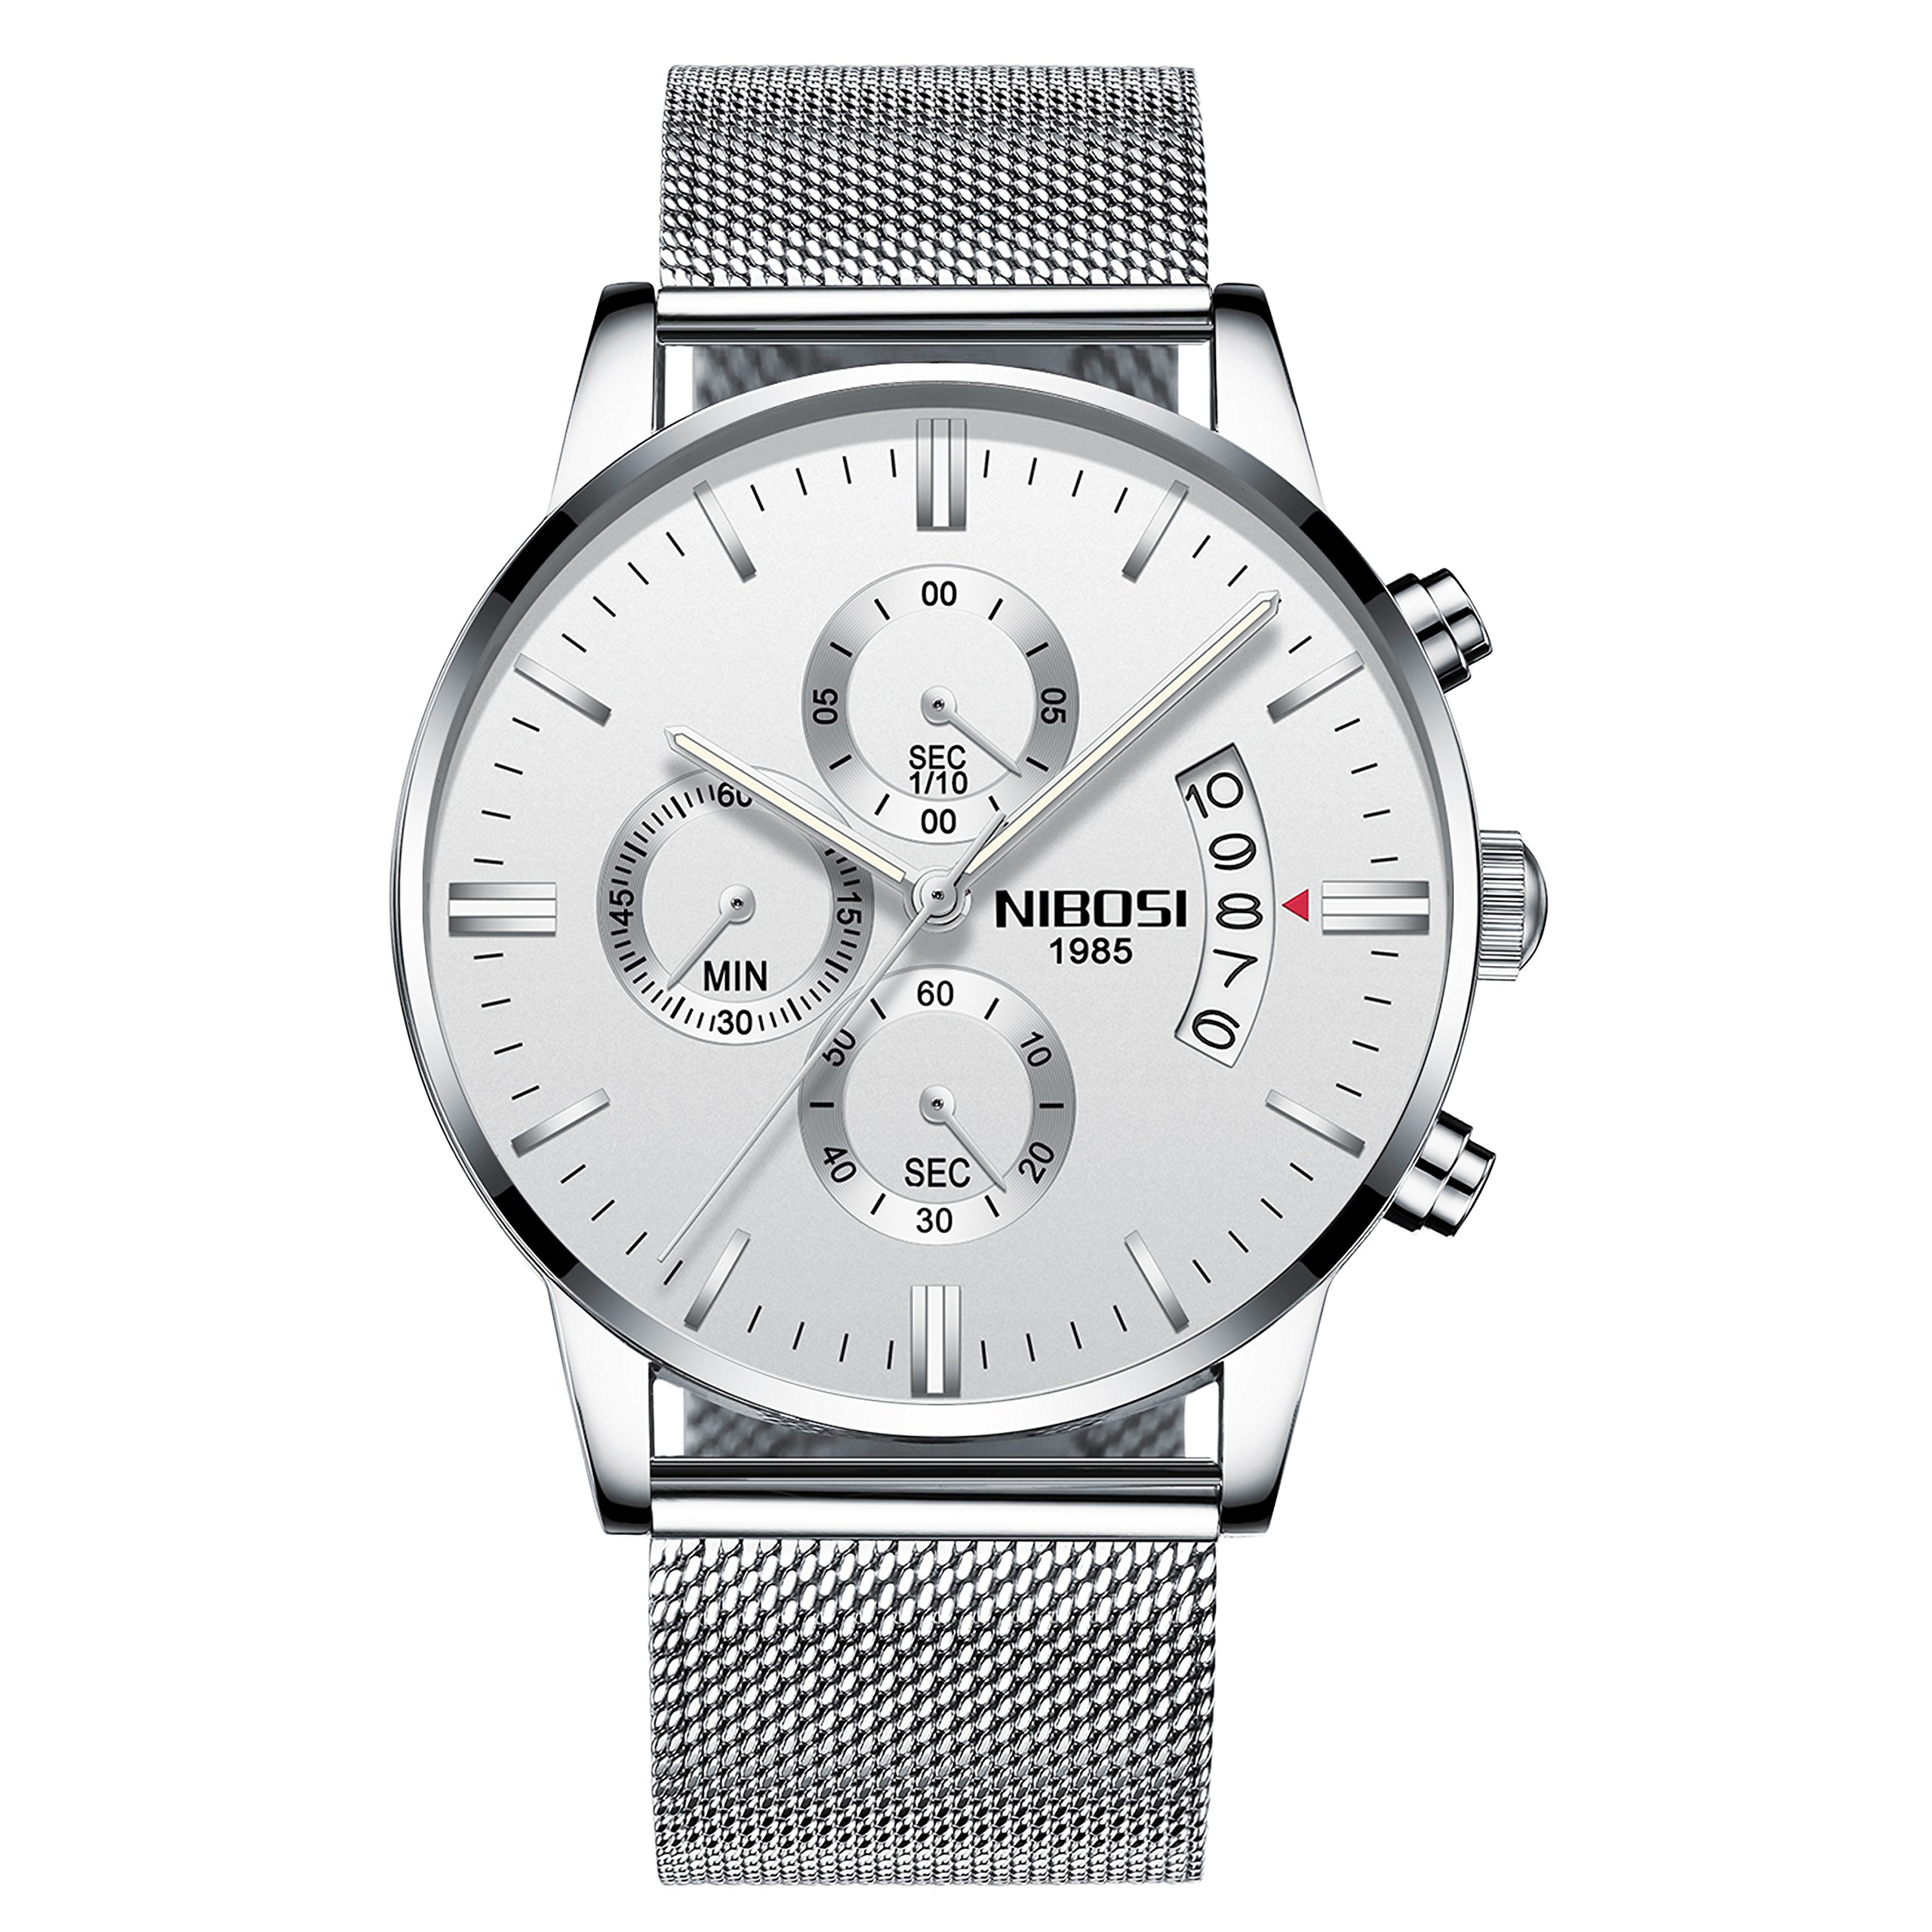 NIBOSI Men's Watches Luxury Chronograph Calendar Waterproof Military Quartz Wristwatches for Men Mesh Alloy Milanese Style Bracelet 2309-GKMBwd by NIBOSI